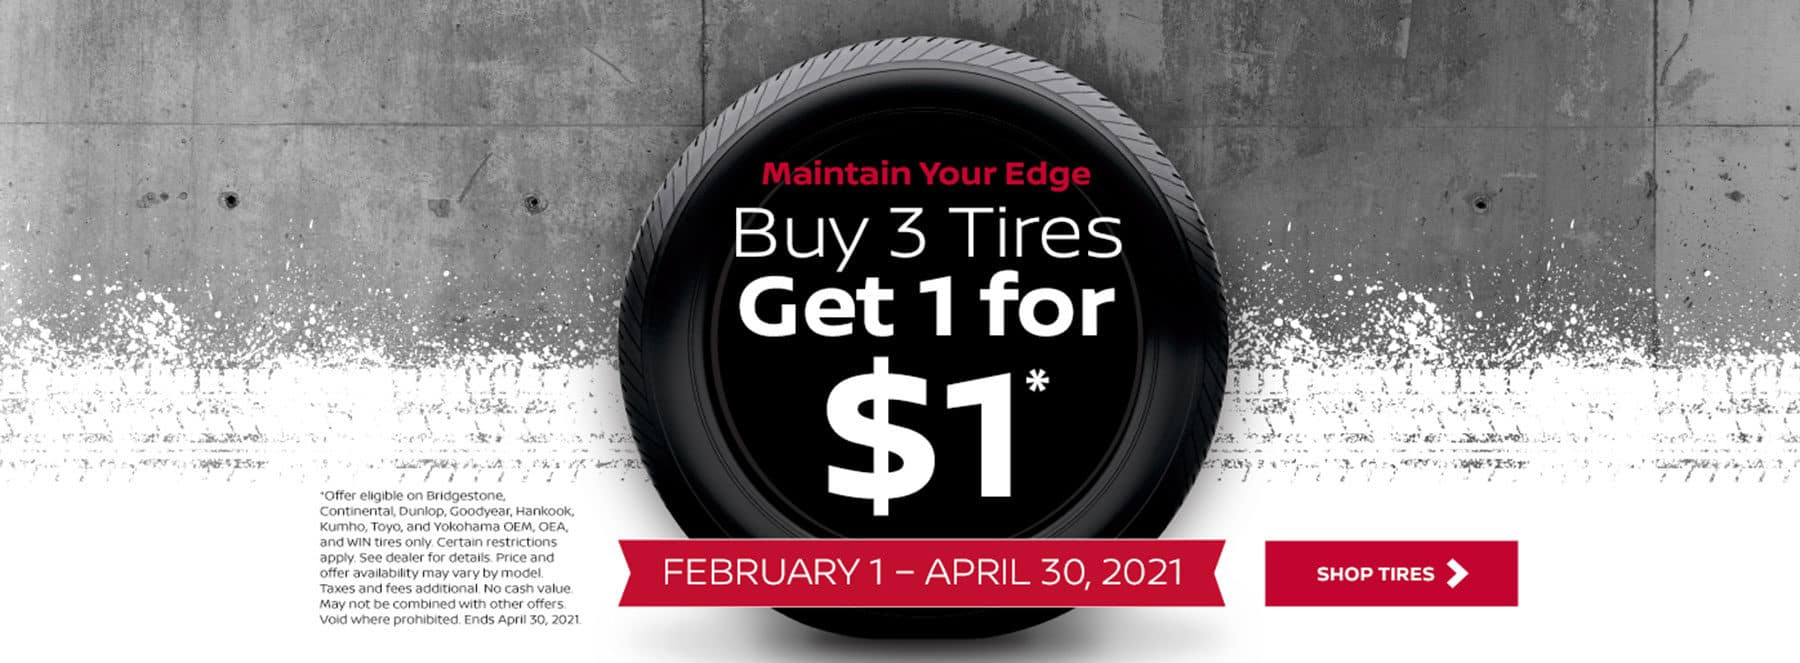 Maintain Your Edge Buy 3 tires, get 1 for $1